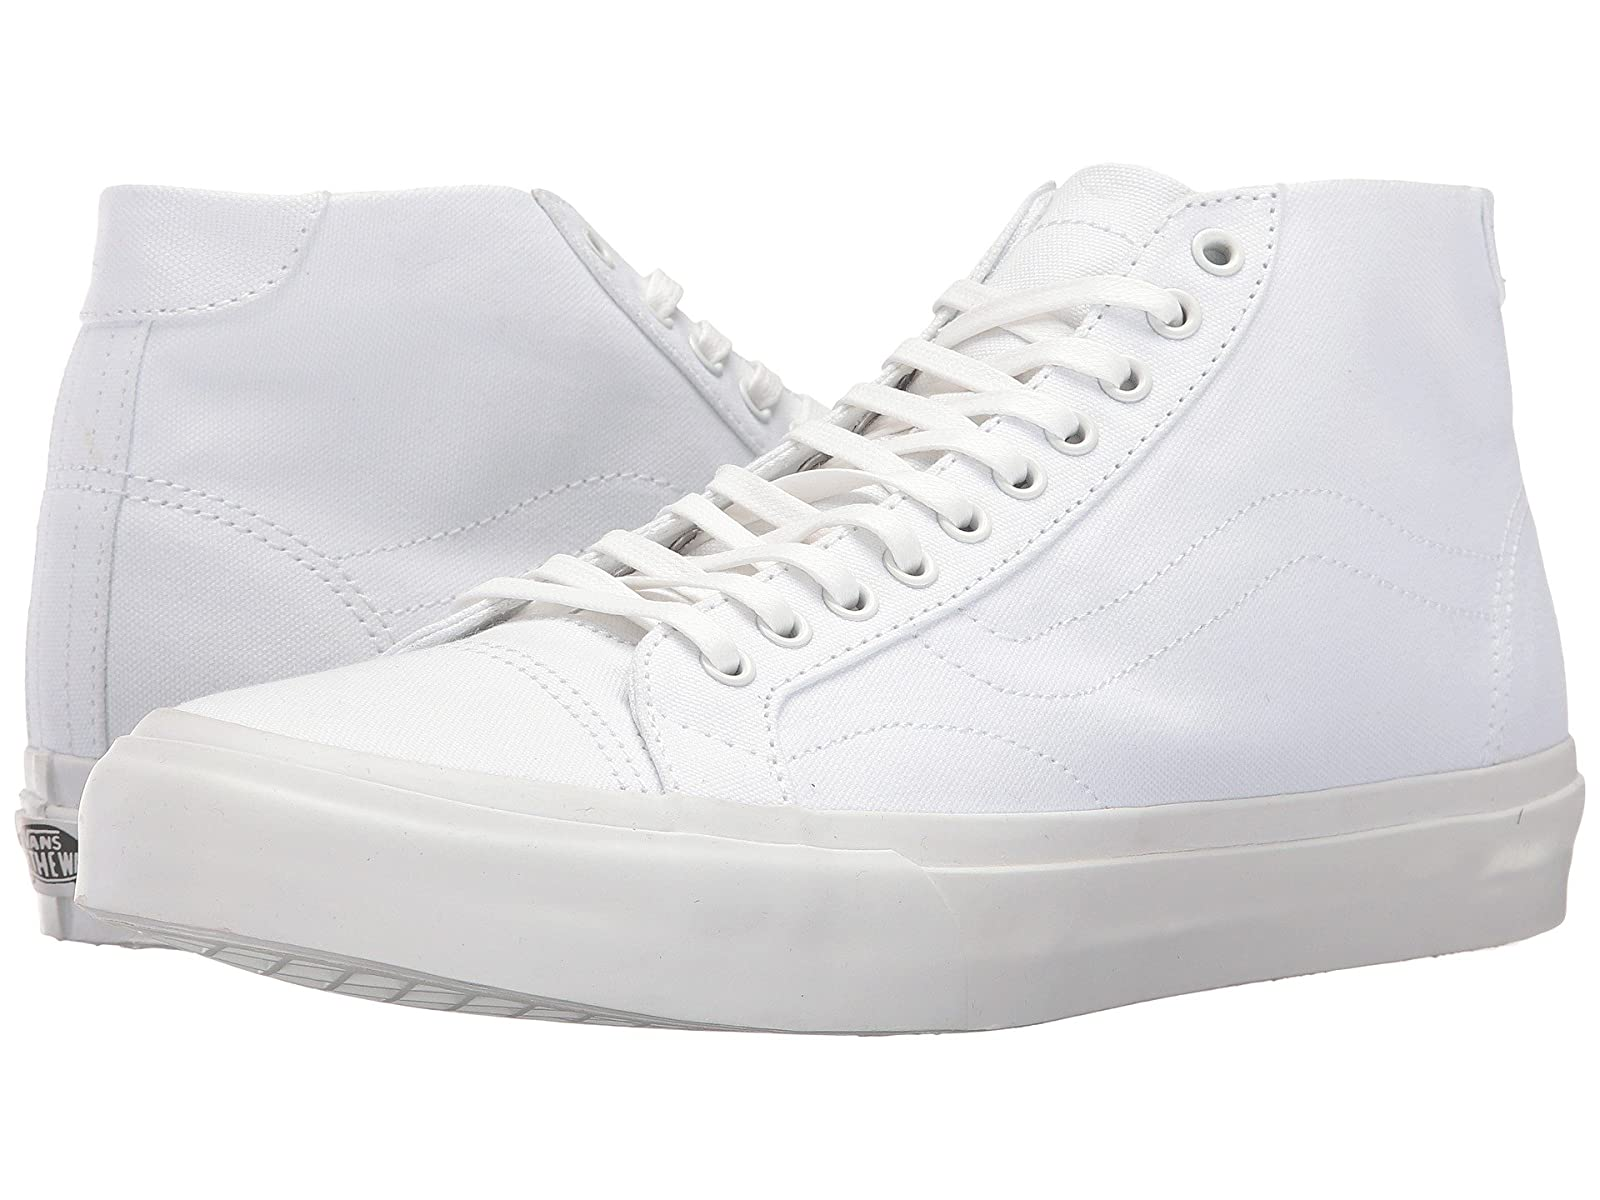 Vans Court MidCheap and distinctive eye-catching shoes